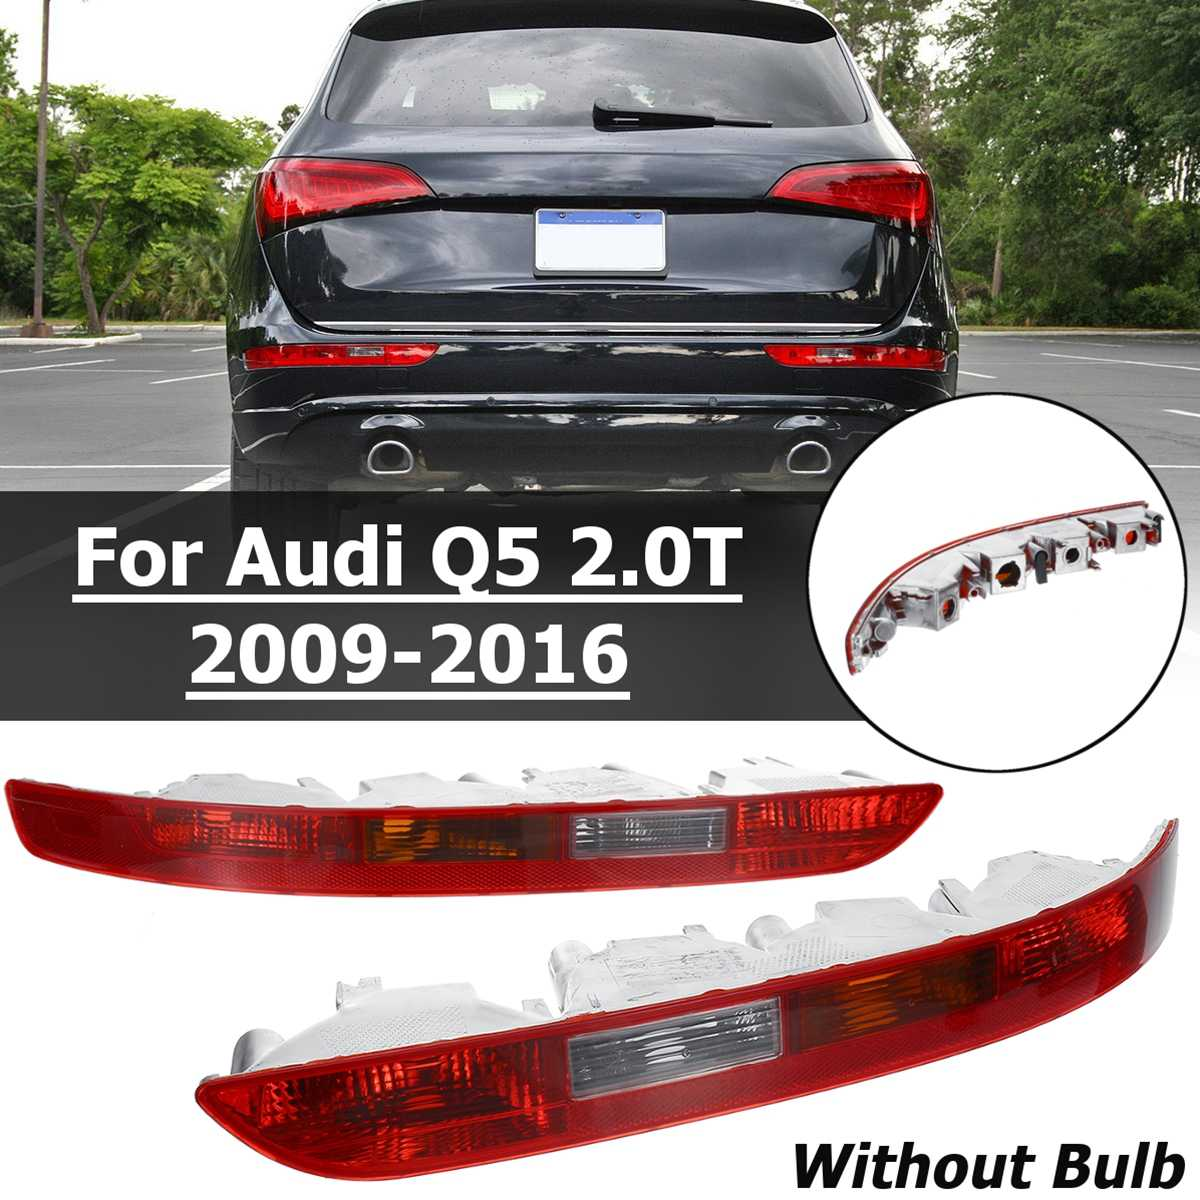 Car Taillight Rear Bumper Tail Light Cover For Audi Q5 2.0T 2009 2010 2012 2013 2014 2015 2016 8R0945096 8R0945095